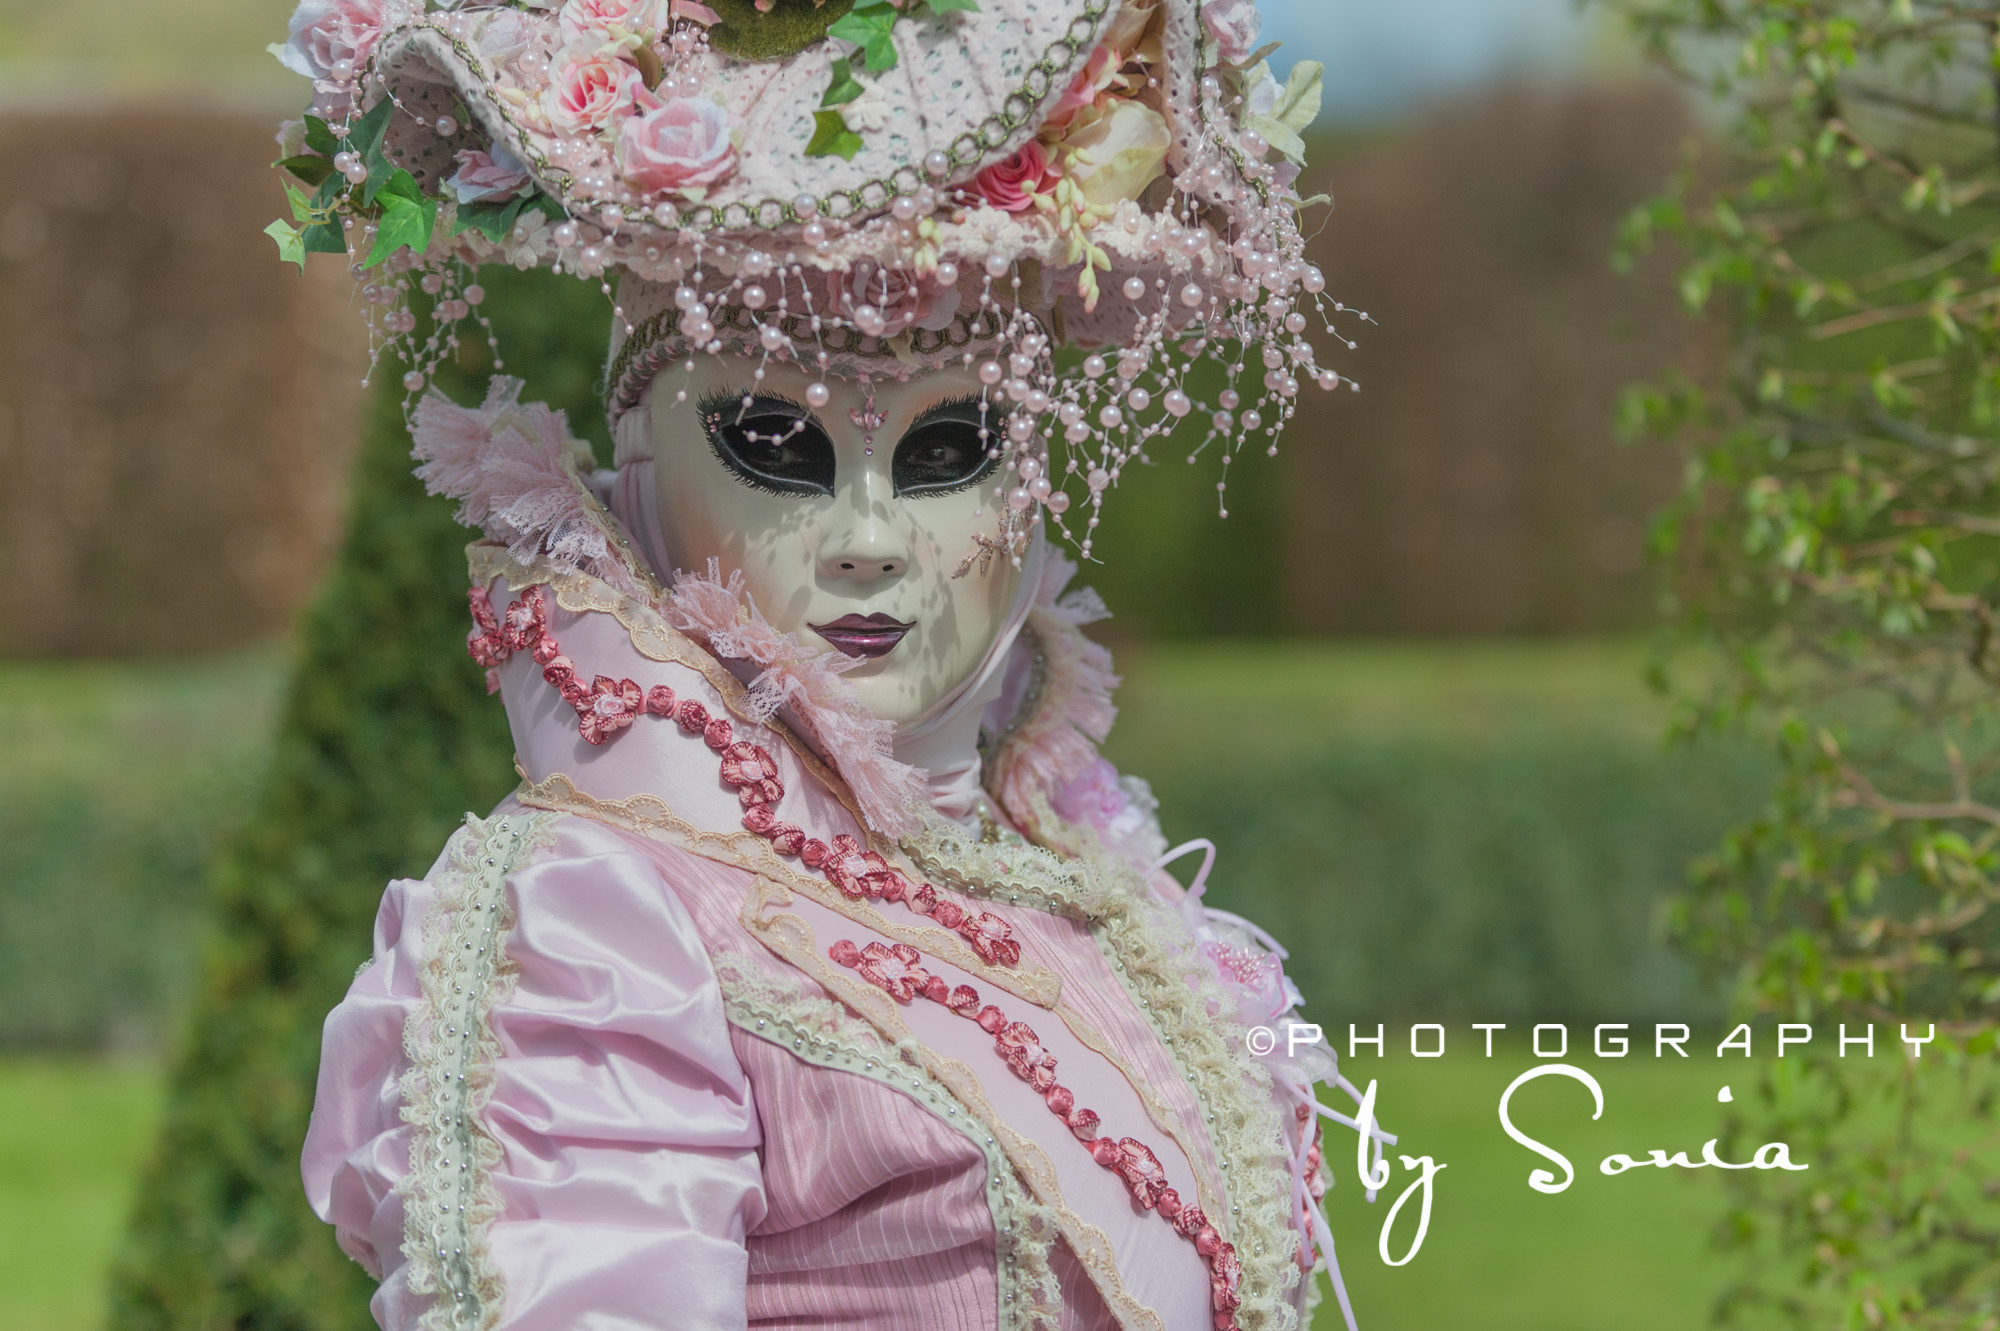 Jardins d annevoie photography webdesign by sonia for Jardin annevoie venise 2015